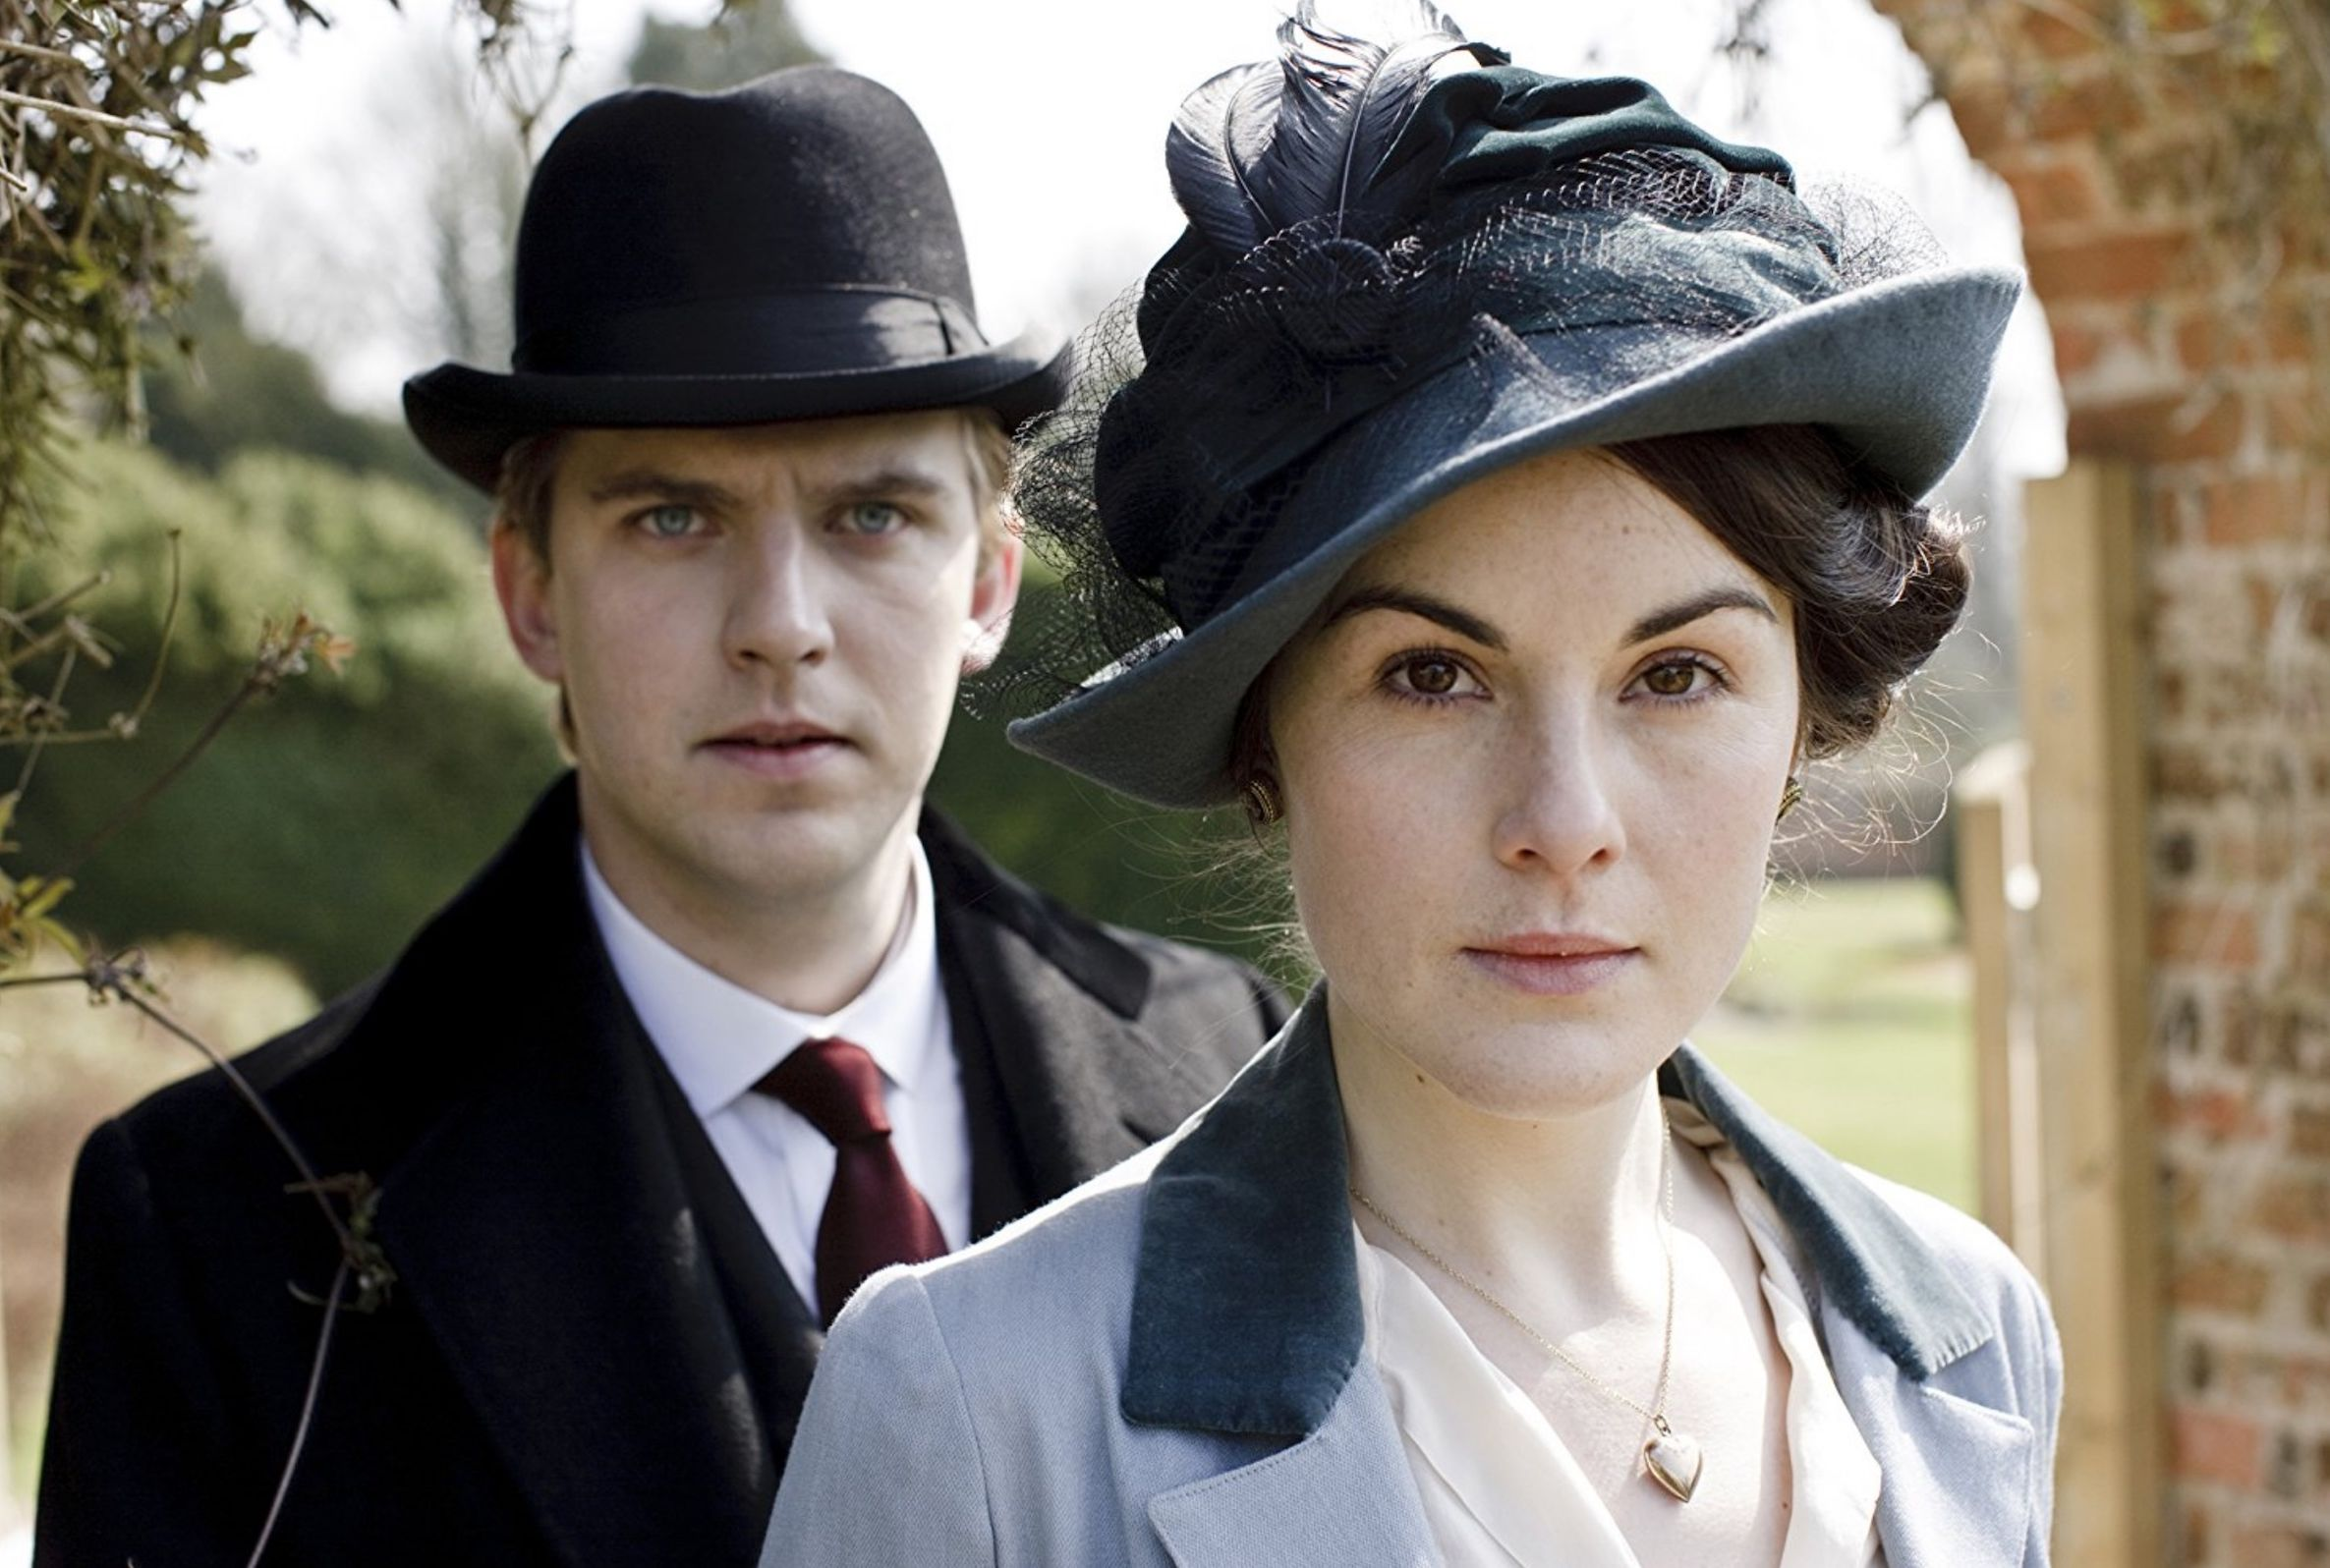 15 Proper Facts About Downton Abbey Mental Floss